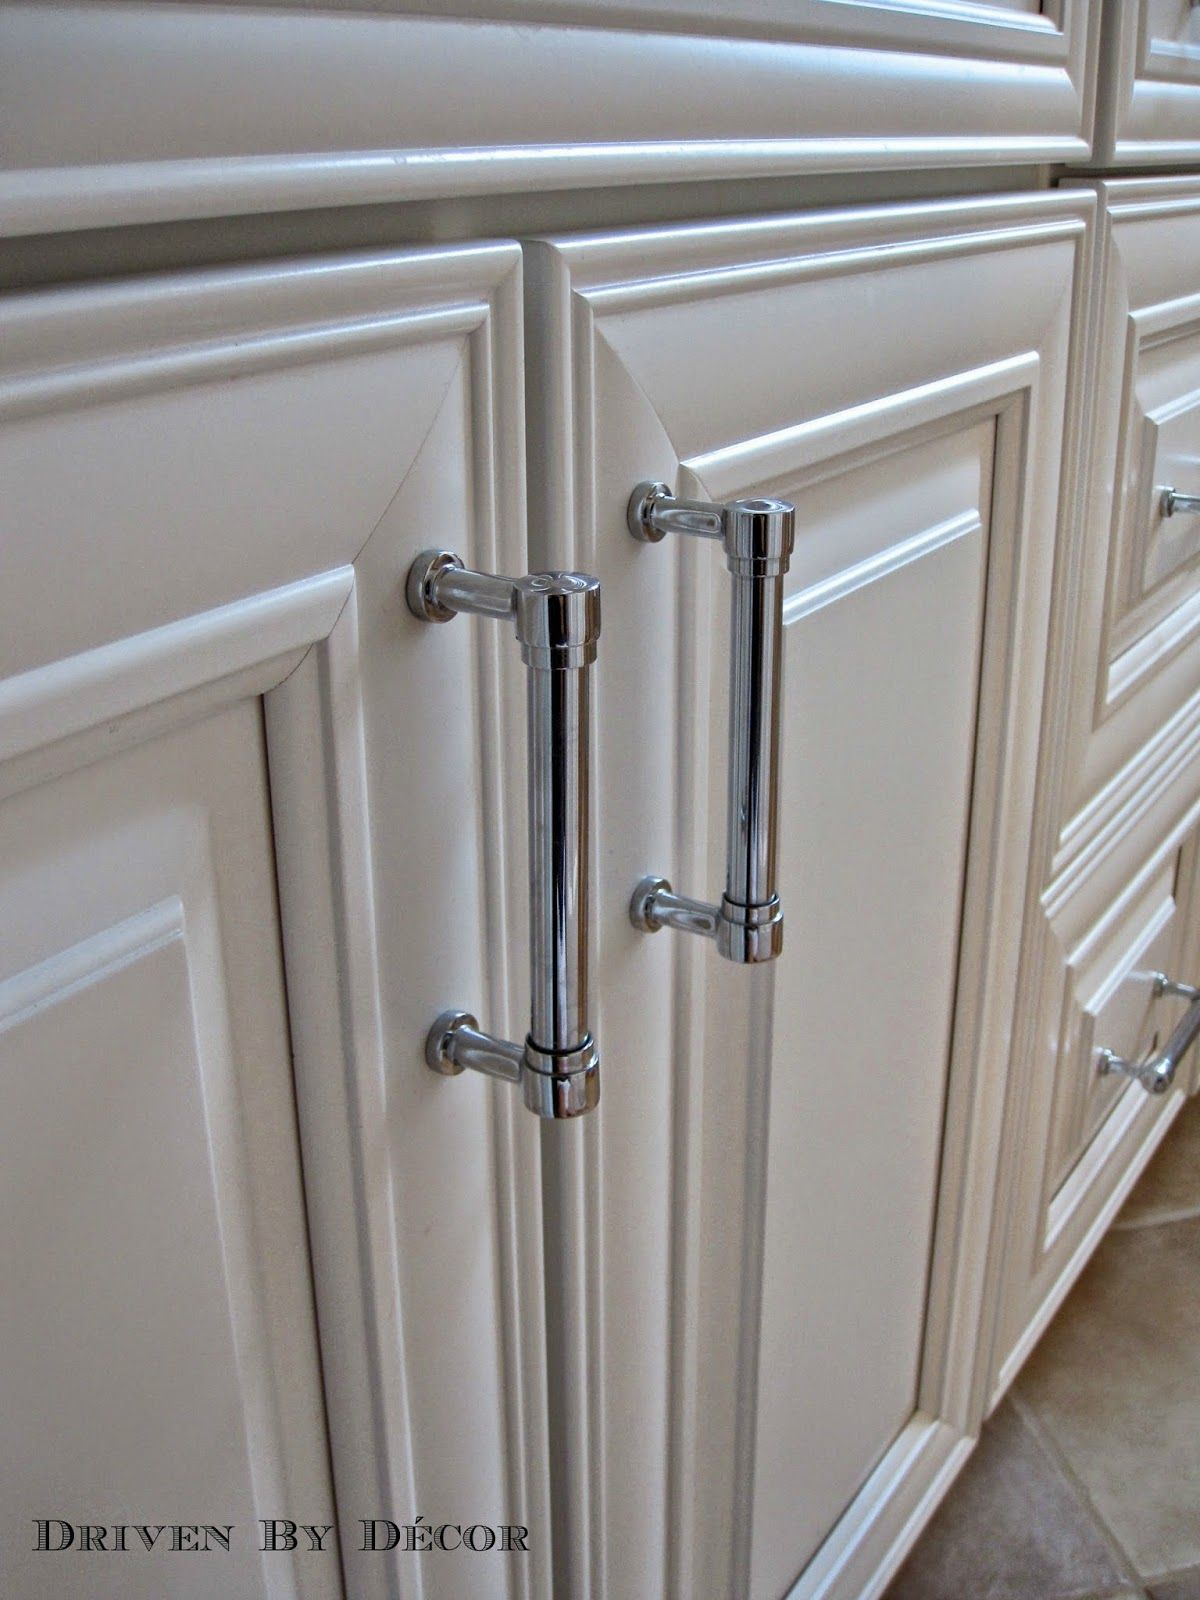 Bathroom Cabinet Hardware Pulls and Handles, new cabinet hardware ...